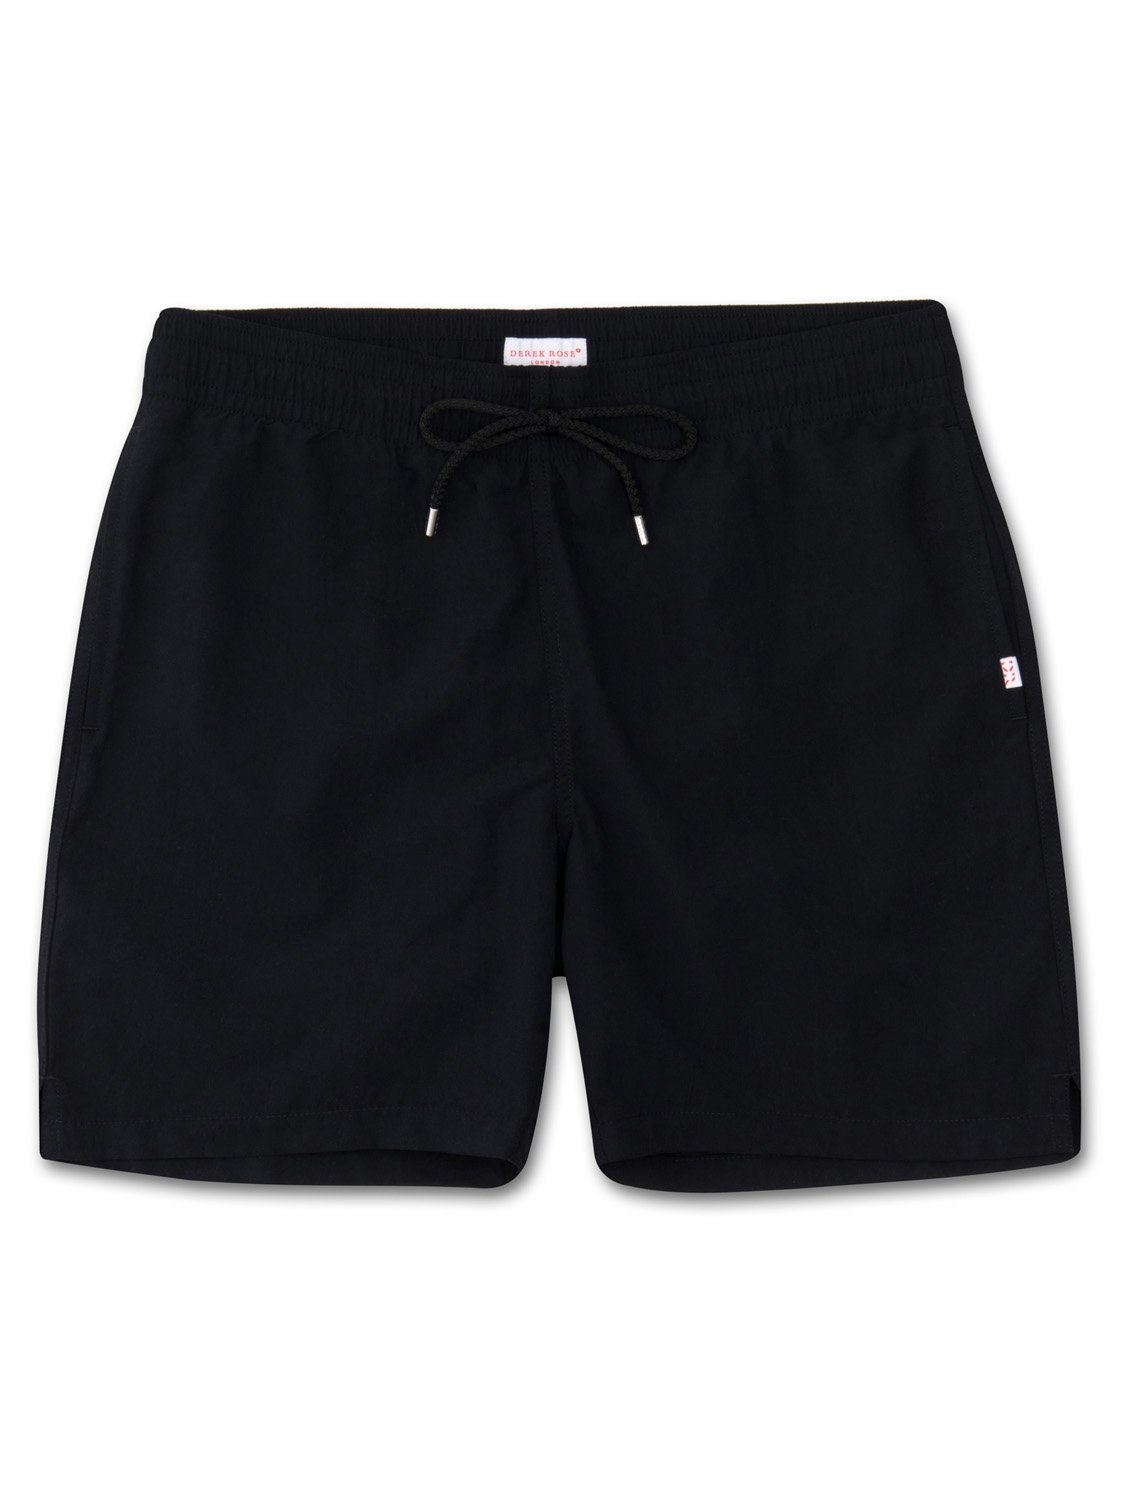 Men's Classic Fit Swim Shorts Aruba Black